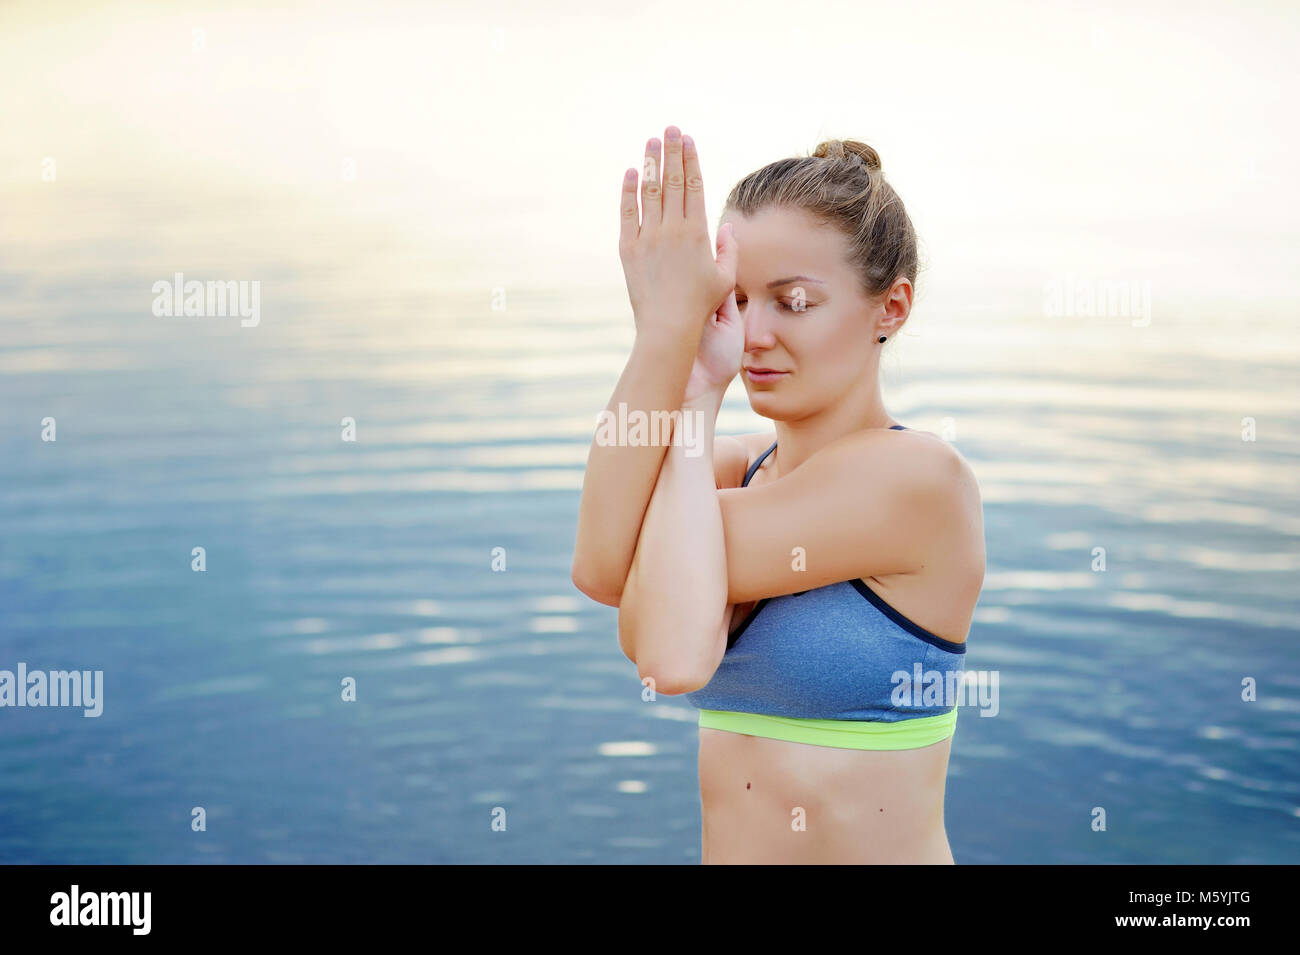 Closeup picture of hands in Eagle yoga  Pose position - Stock Image